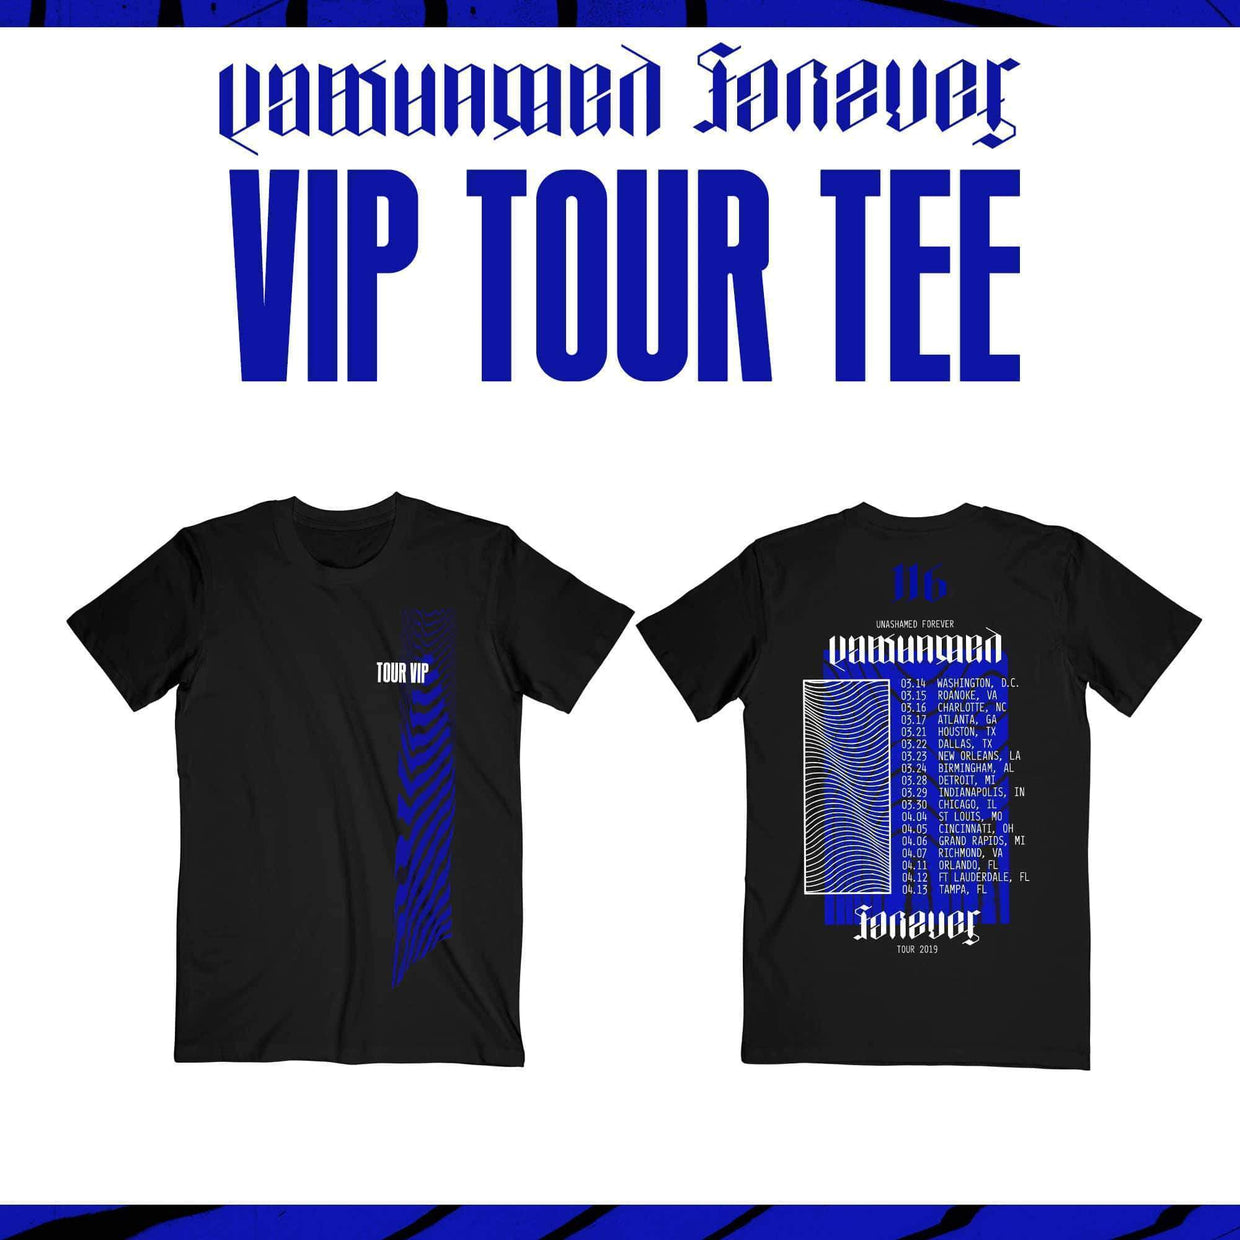 Unashamed Forever Tour - DIAMOND VIP - Grand Rapids, MI - 04/06